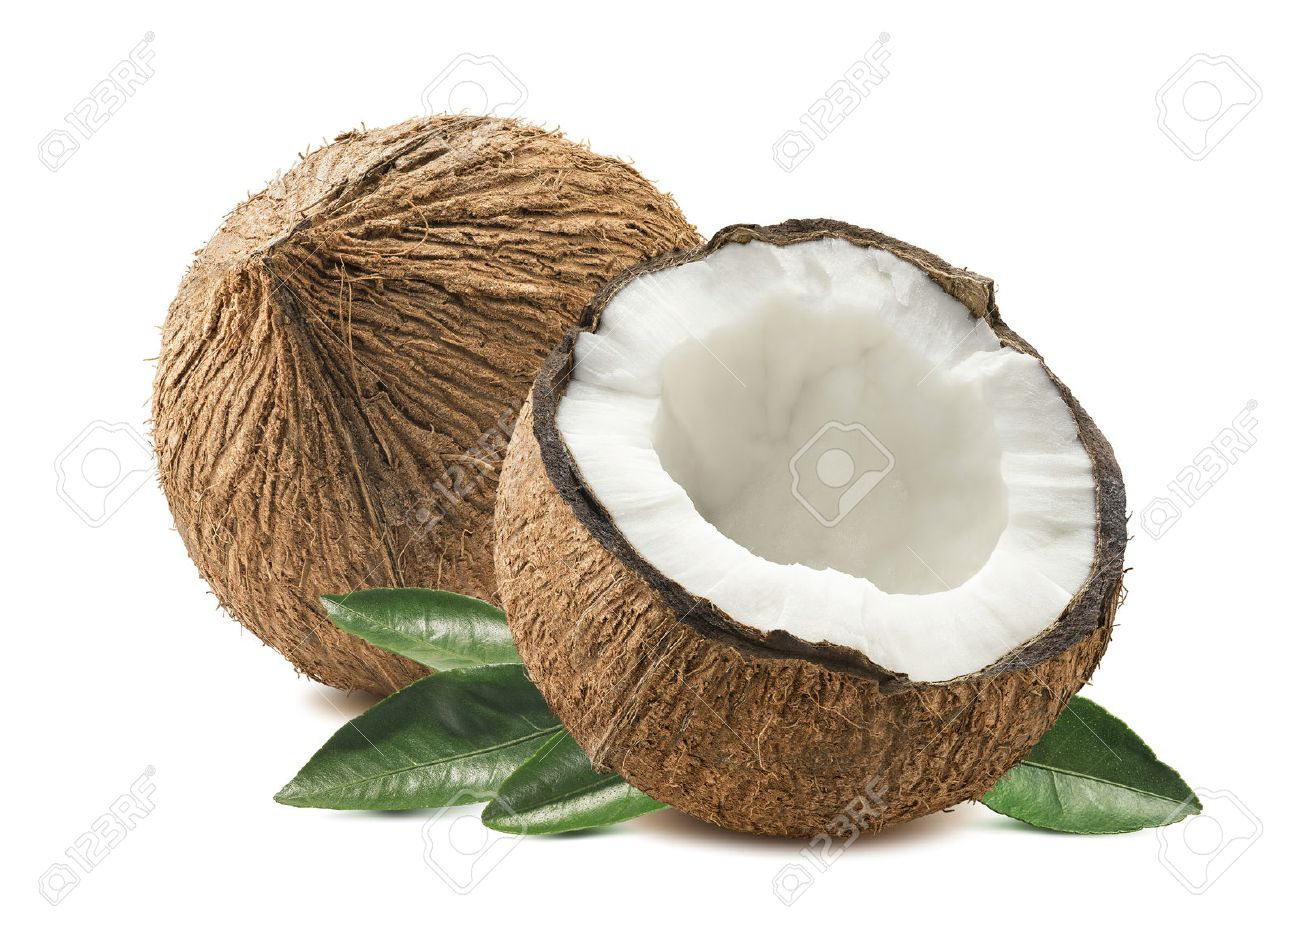 Coconut whole cut half leaves composition isolated on white background as package design element - 51015865